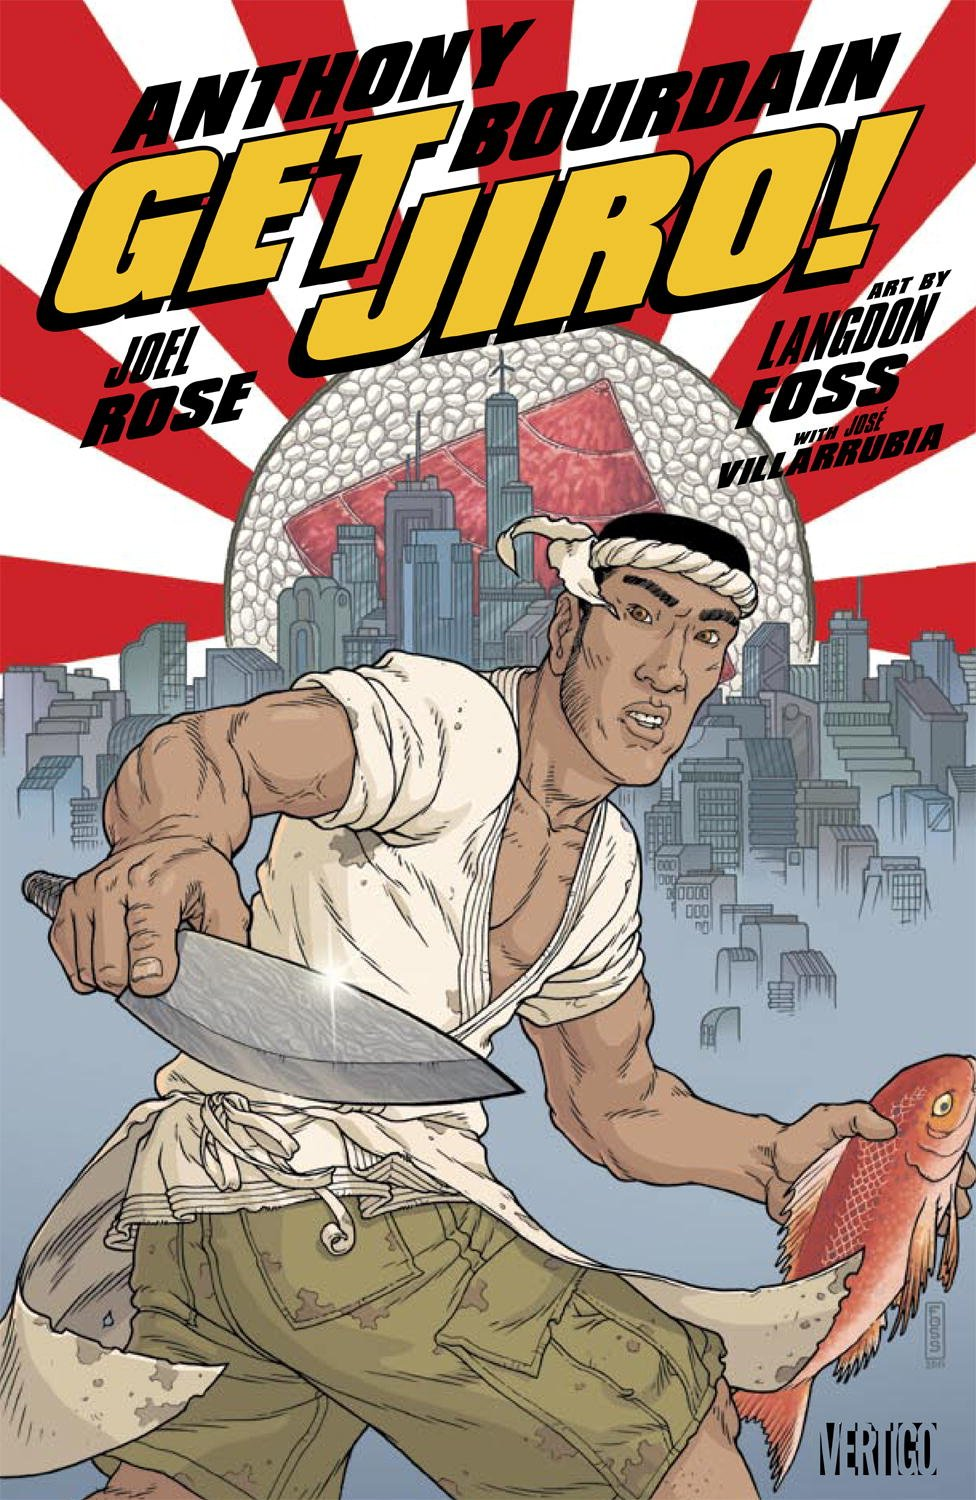 Image result for anthony bourdain Get Jiro!